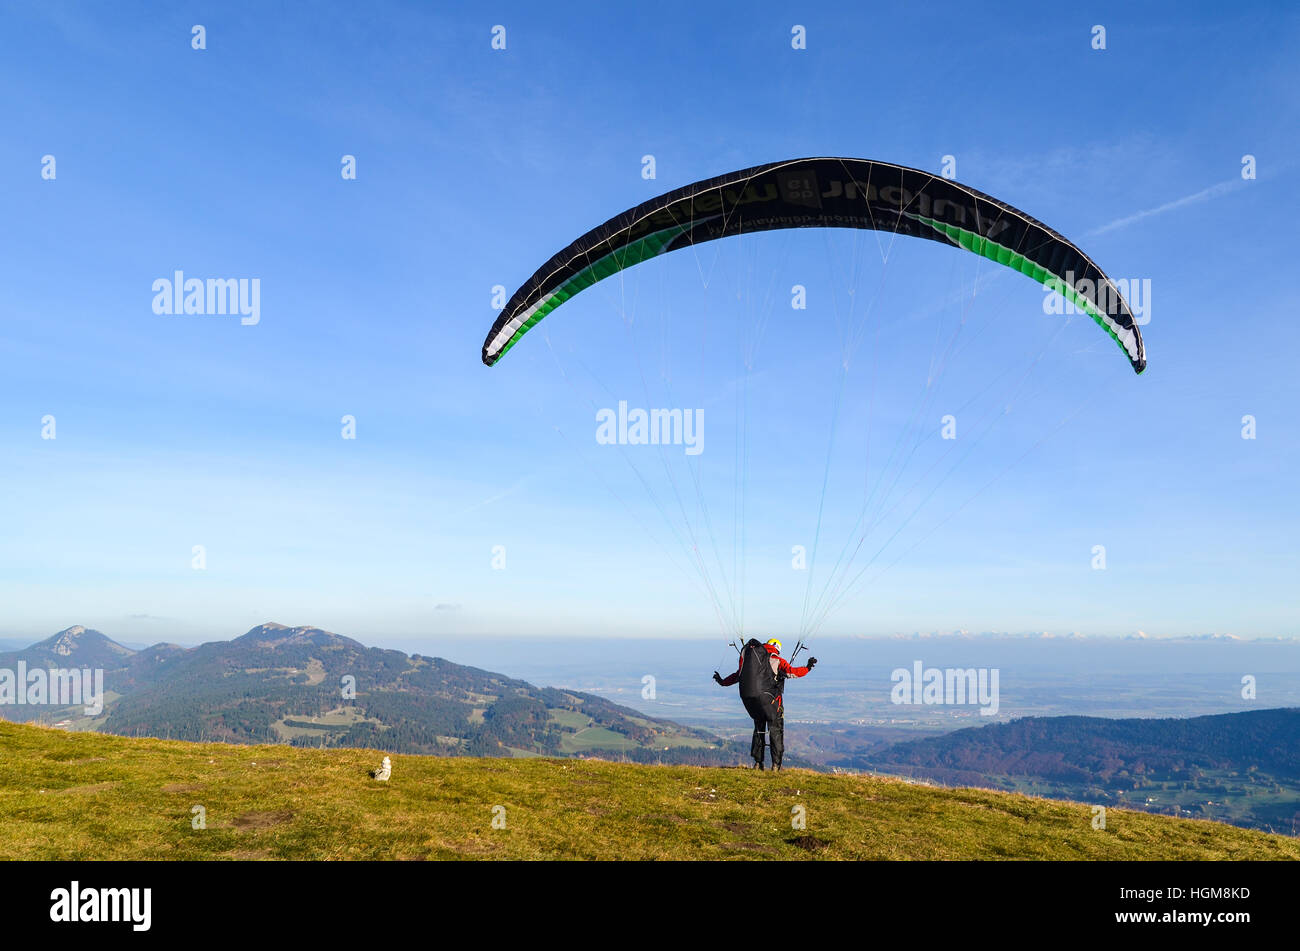 Paraglider taking off from Mont d'Or in France and flying over the Jura mountains Stock Photo